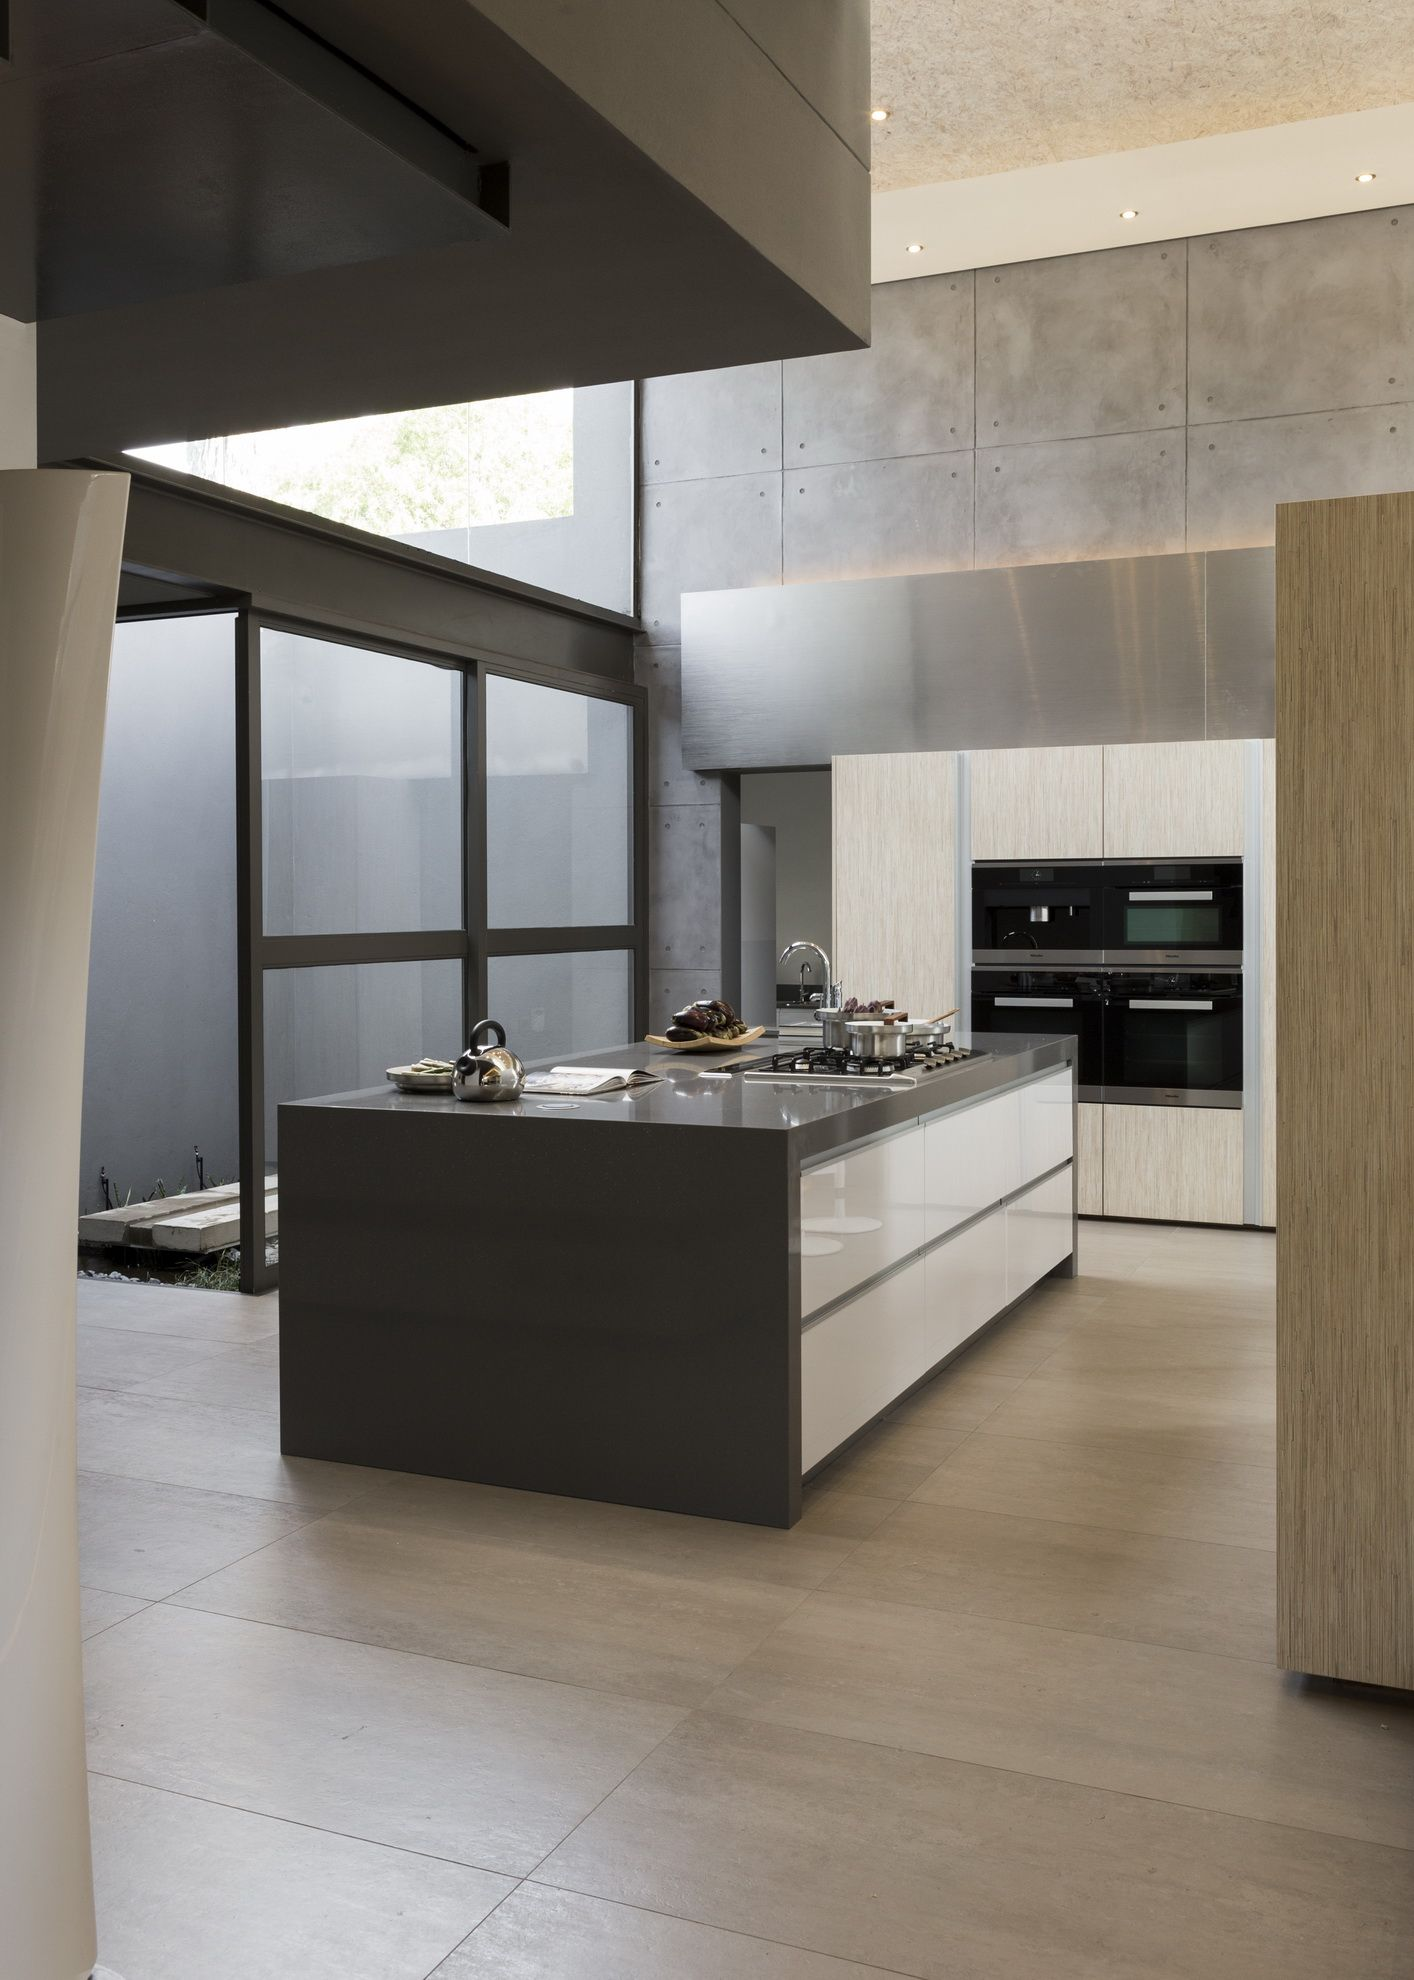 Alacena Cocina Ikea House Sar Kitchen M Square Lifestyle Design Design